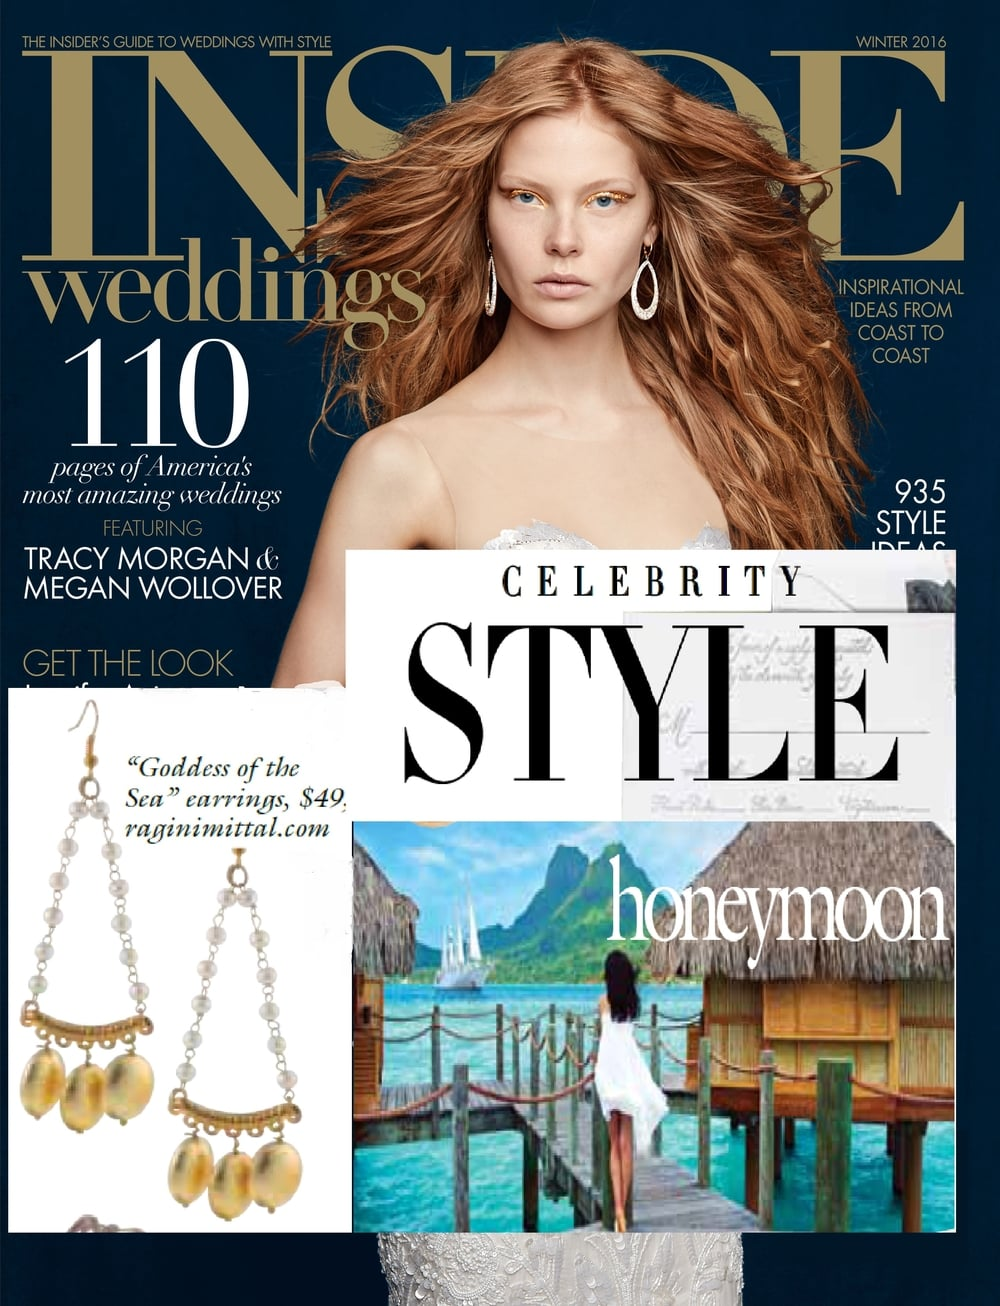 Ragini Mittal jewelry published in Dec issue of Inside Wedding.